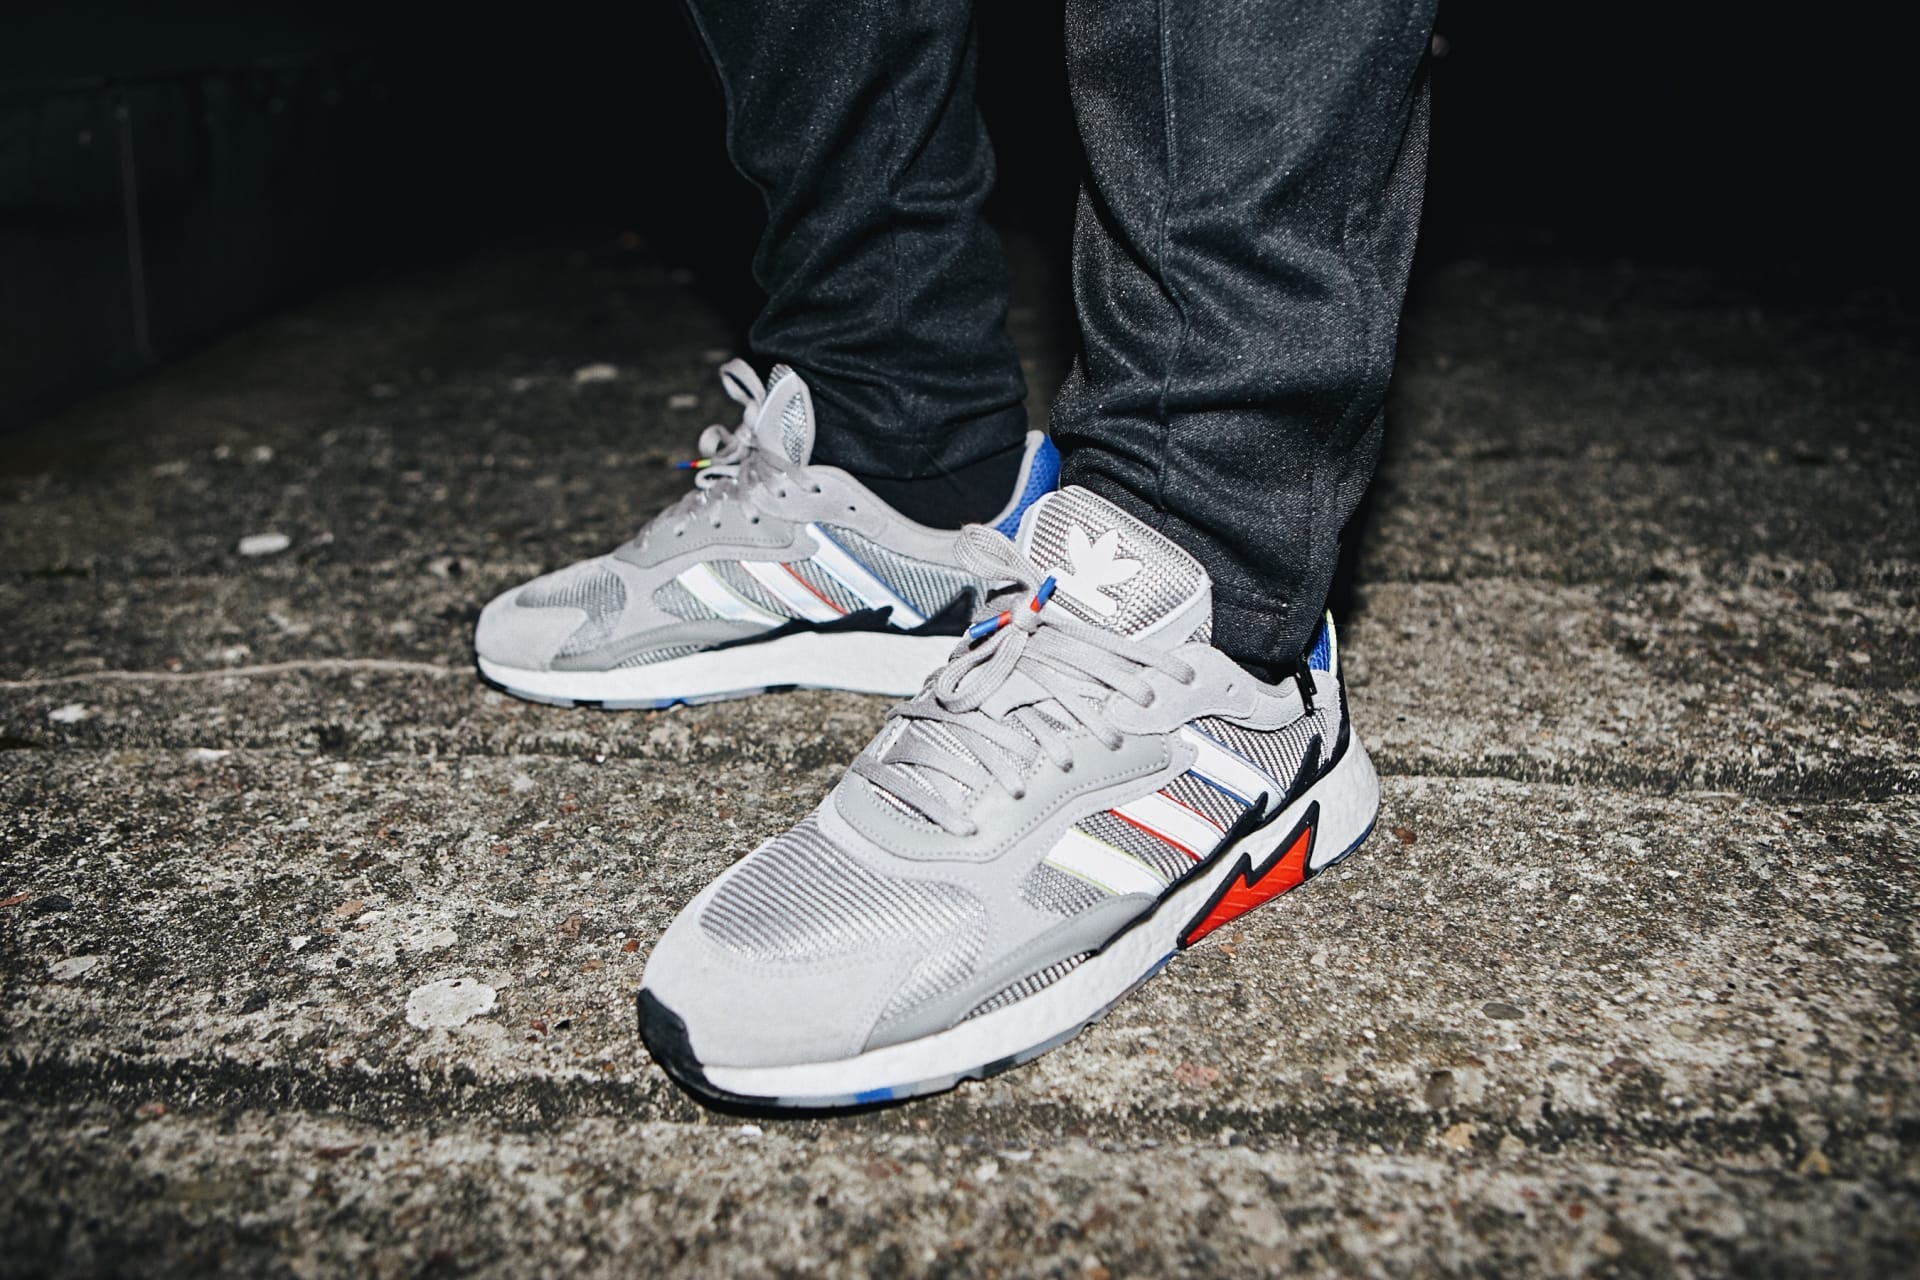 half off 6ff42 b0808 adidas Originals and Foot Locker Brought the Heat to Berlin to Launch the  90s-Inspired TRESC Run